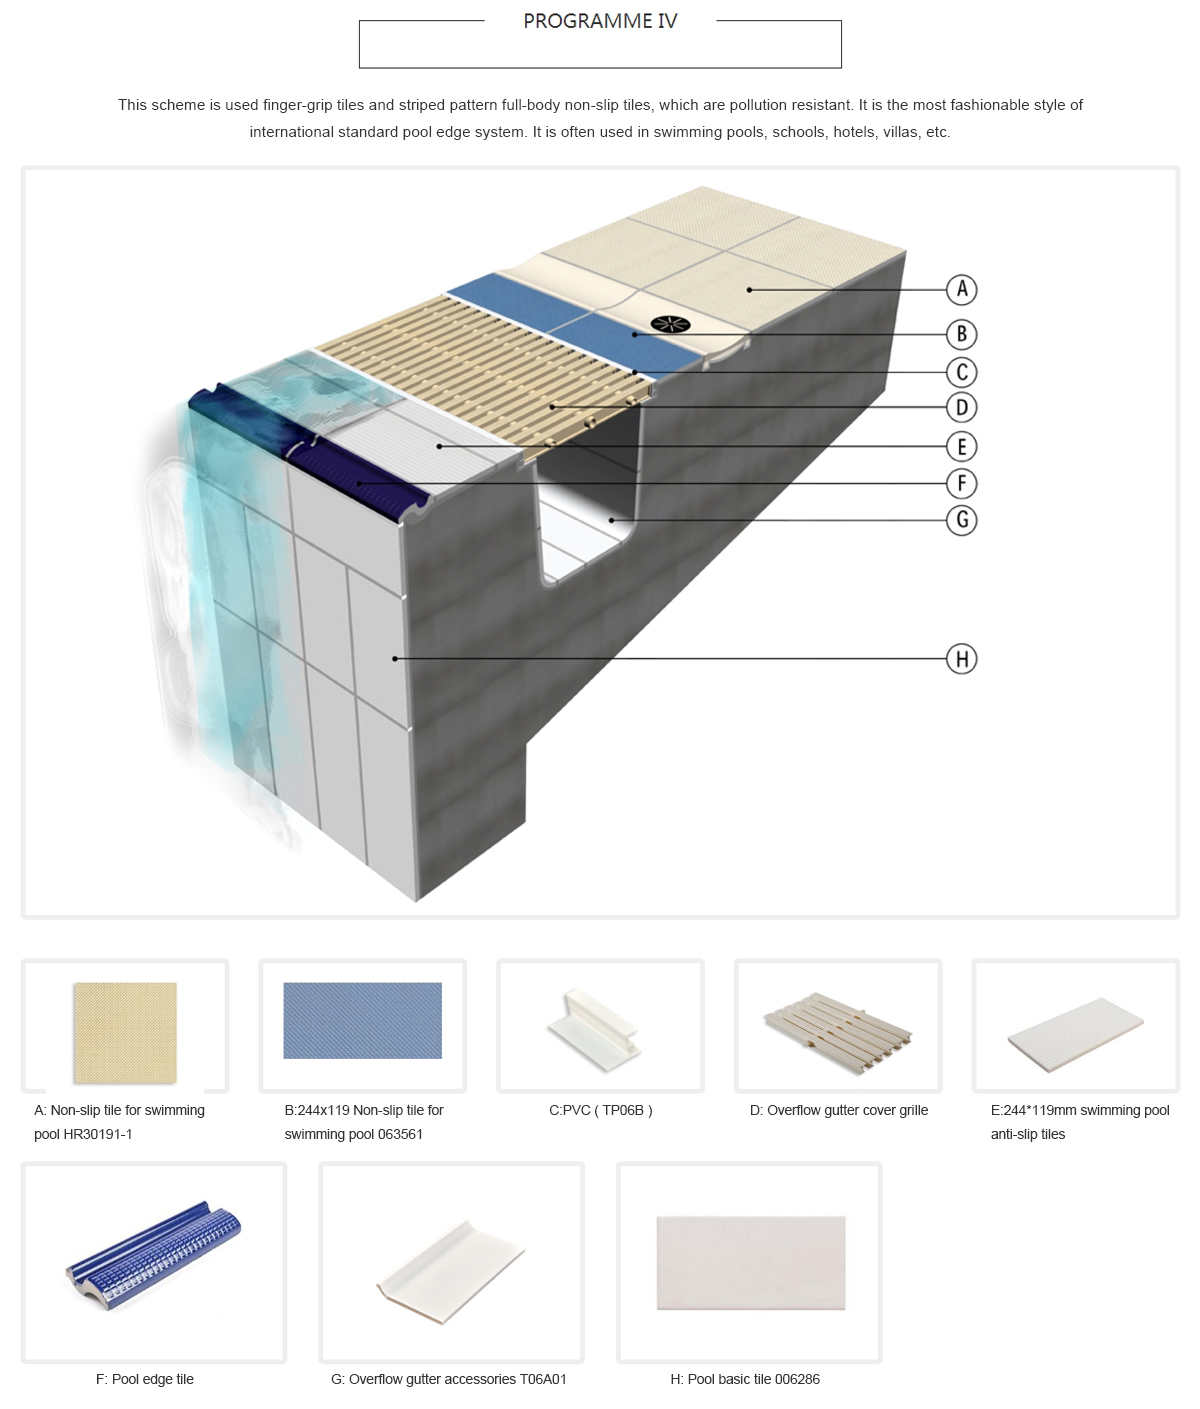 Pool Plastic Overflow Swimming Pool Grill Grating View Pool Plastic Overflow Grating Taotao Product Details From Foshan Tileeasy Building Material Co Ltd On Alibaba Com